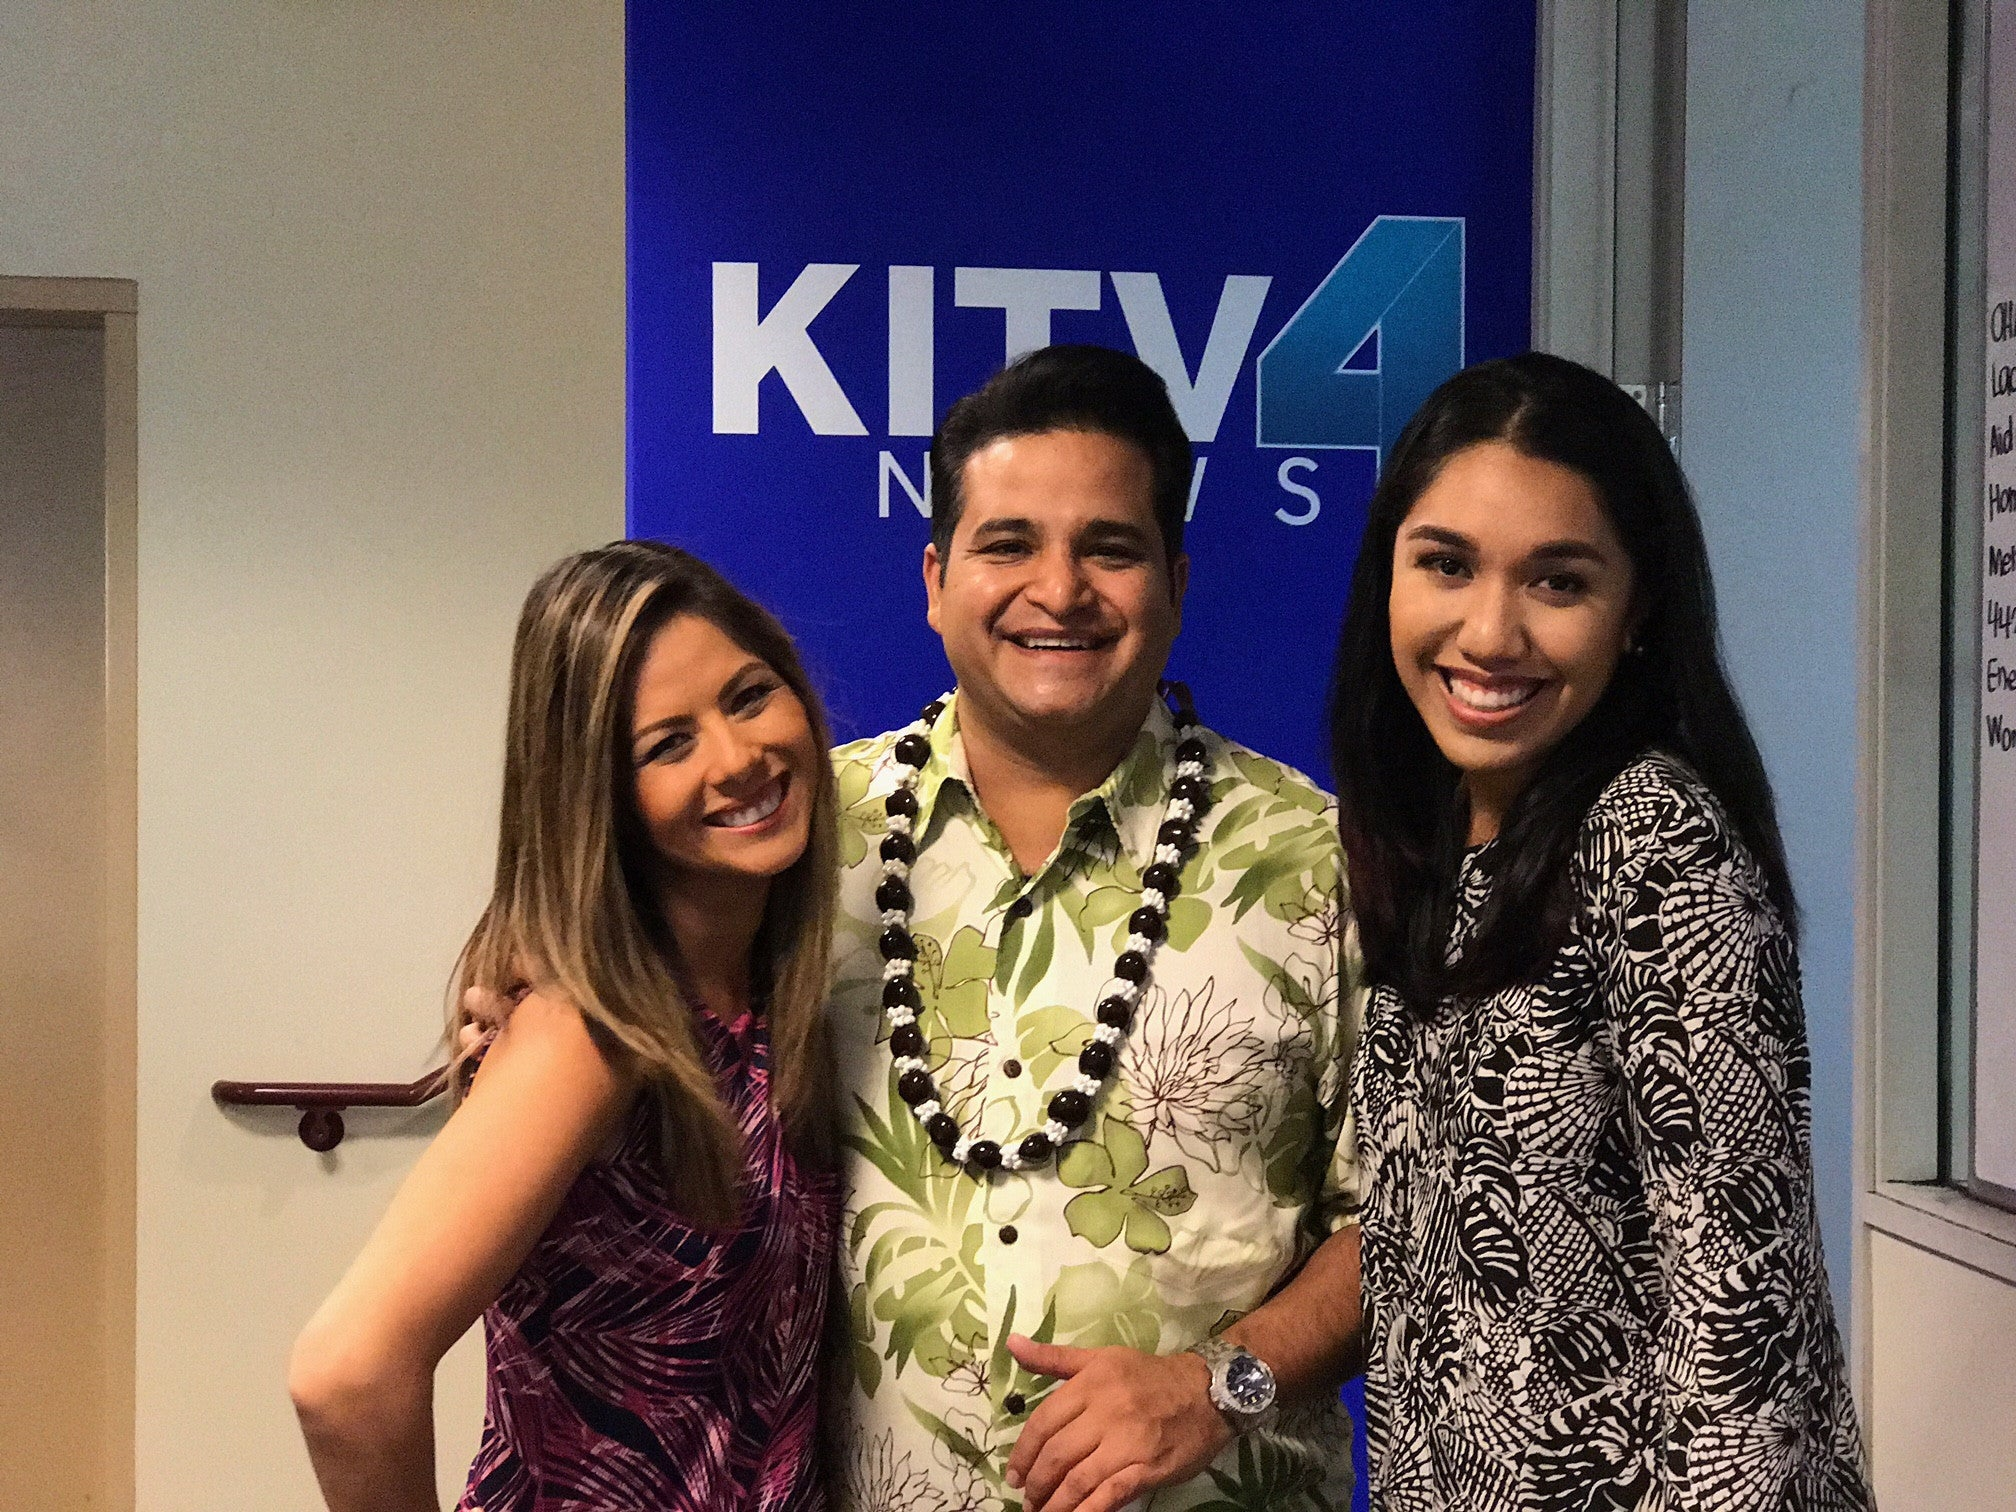 KITV4 NEWS in 'IOLANI